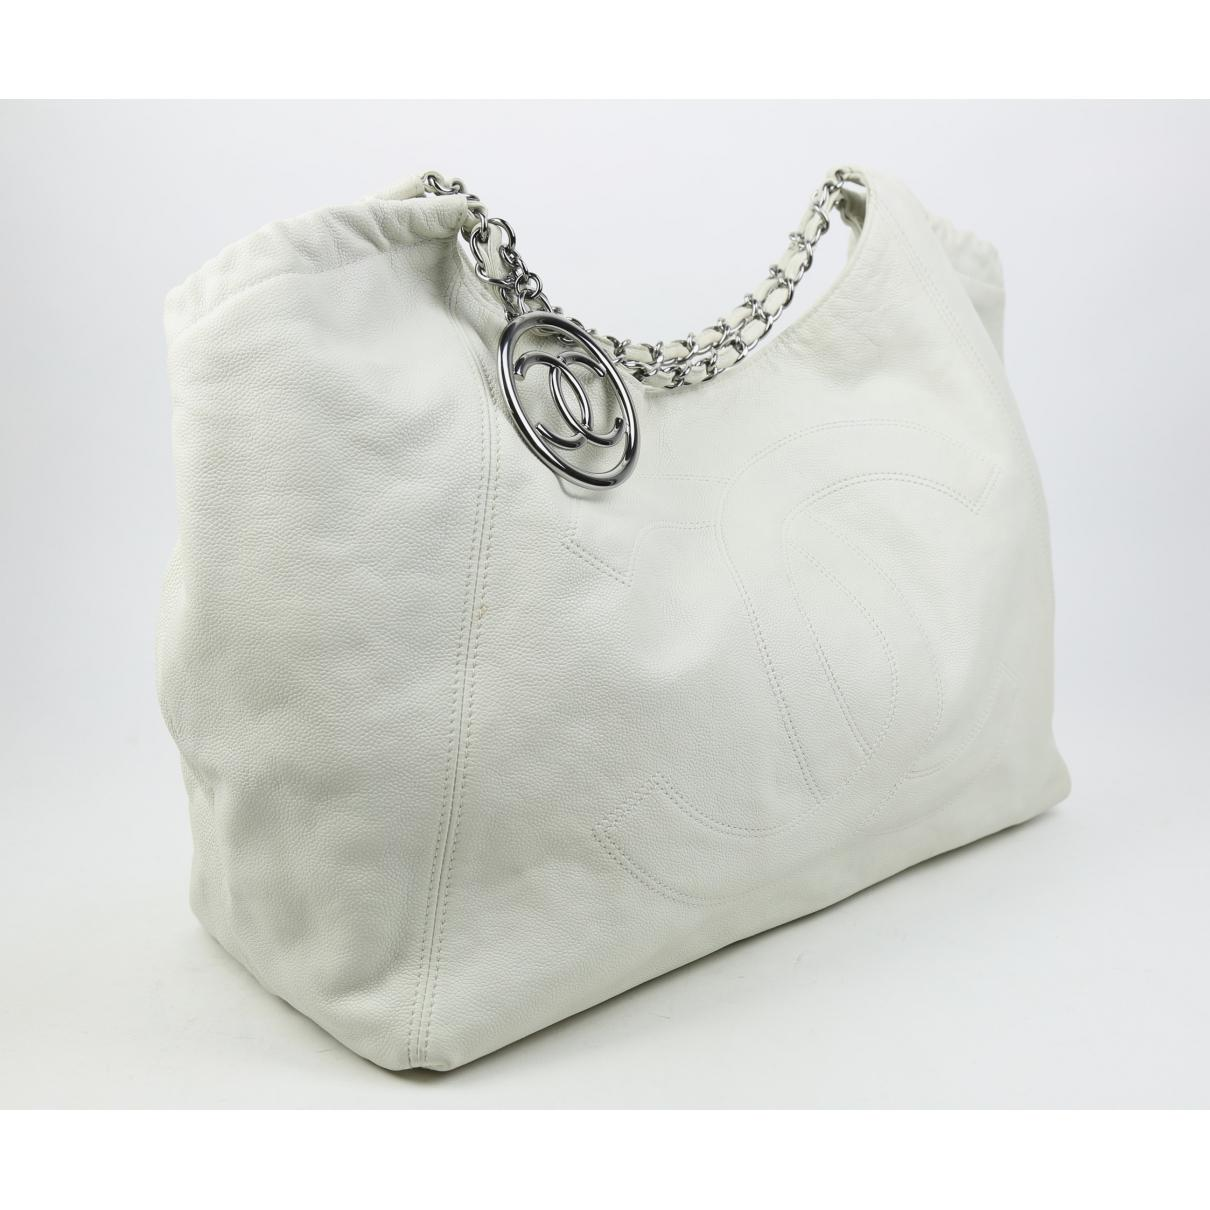 f17b093ca Chanel - White Coco Cabas Leather Tote - Lyst. View fullscreen